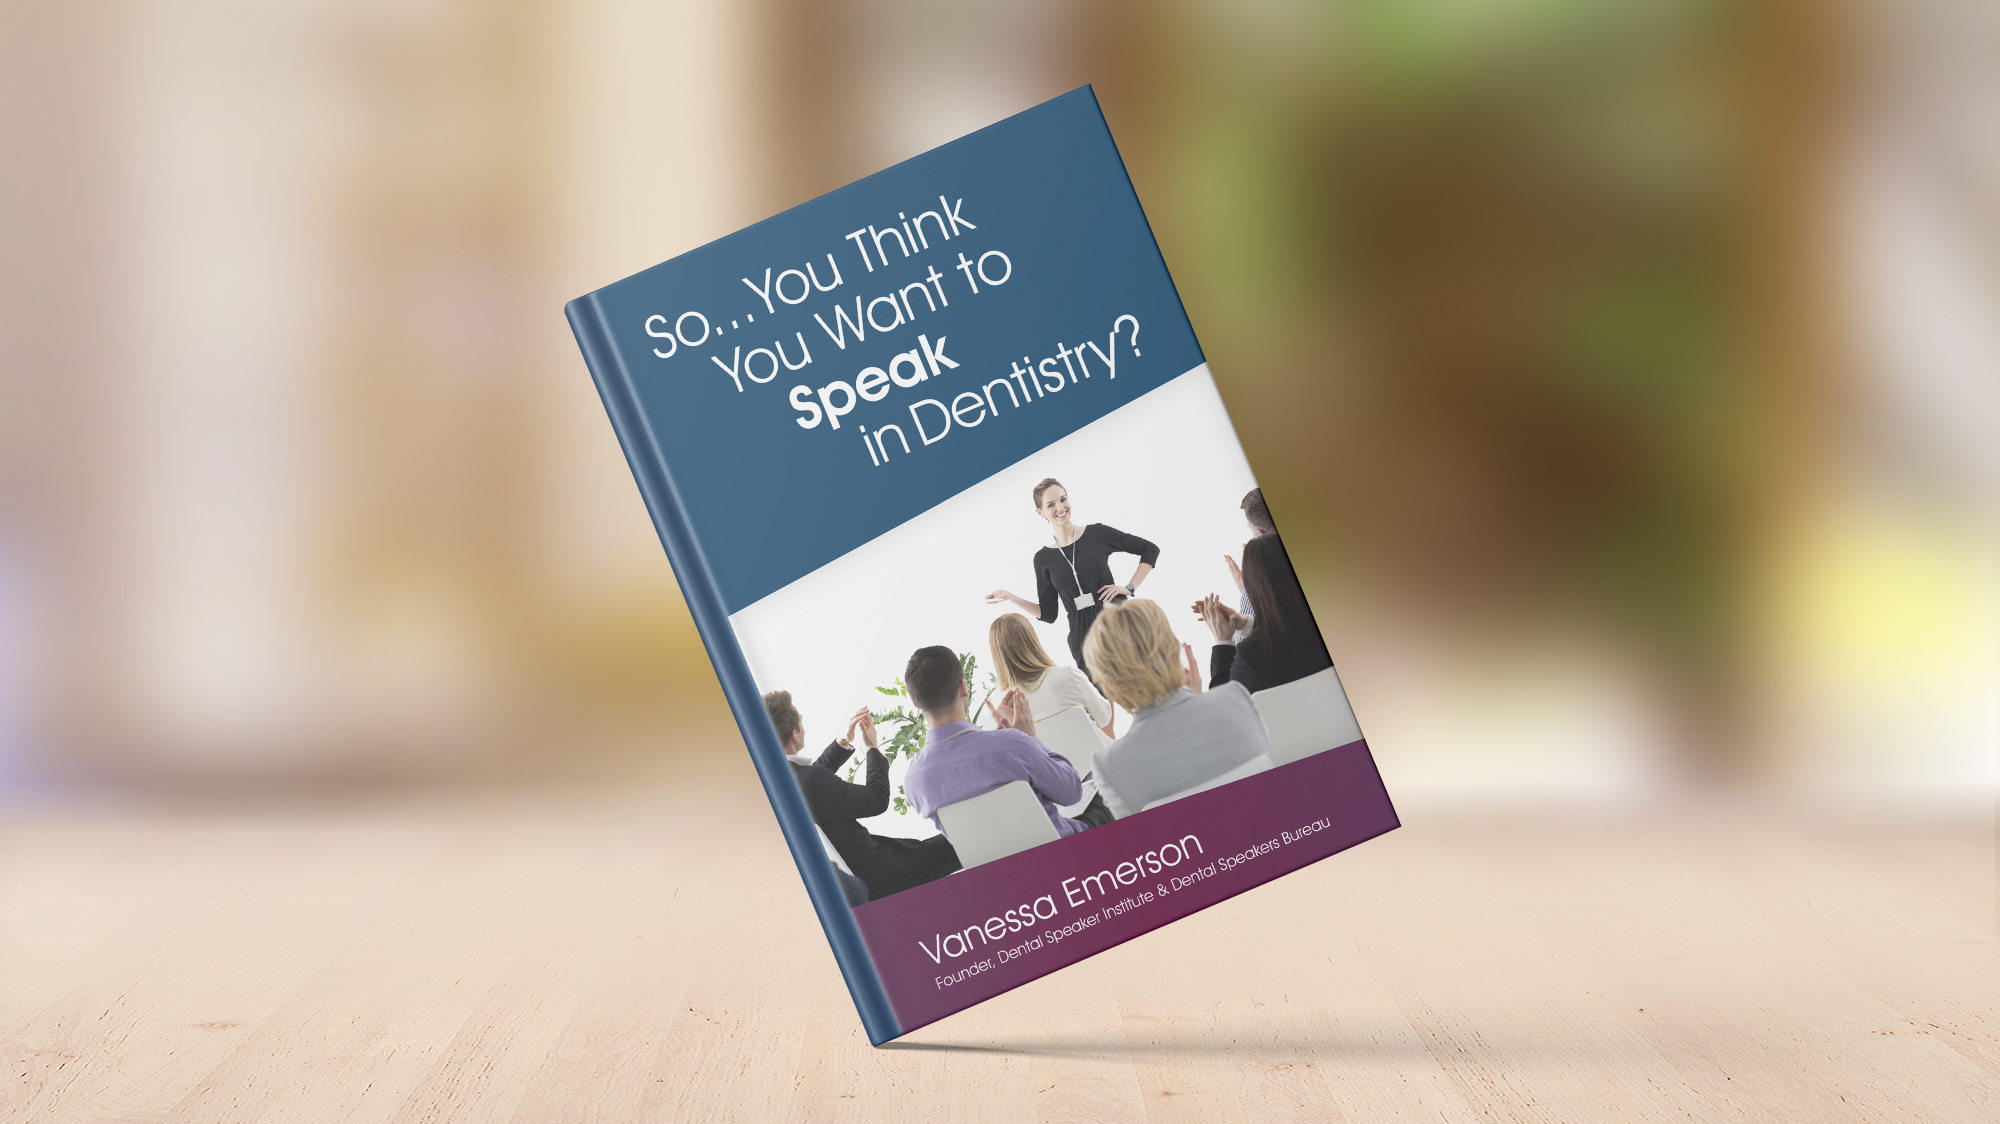 So you think you want to speak in dentistry - book by Vanessa Emerson